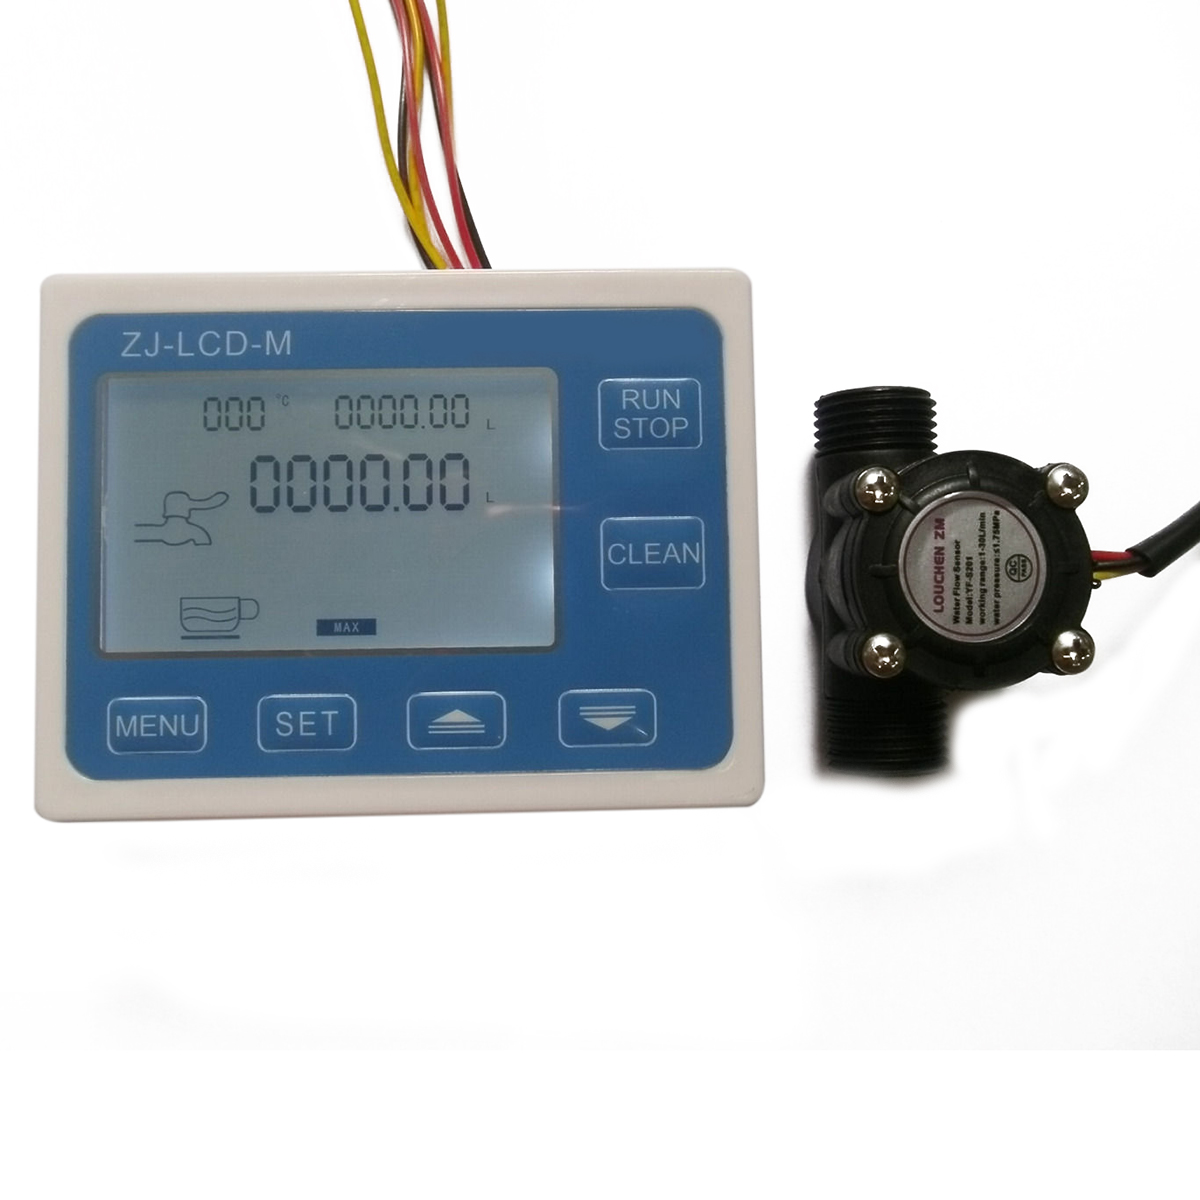 G1/2 Hall effect Flow Water Sensor Meter Mayitr Flowmeter + Blue Digital LCD Display Controller For Solenoid Valve l oreal paris casting crème gloss 432 цвет 432 шоколадный трюфель